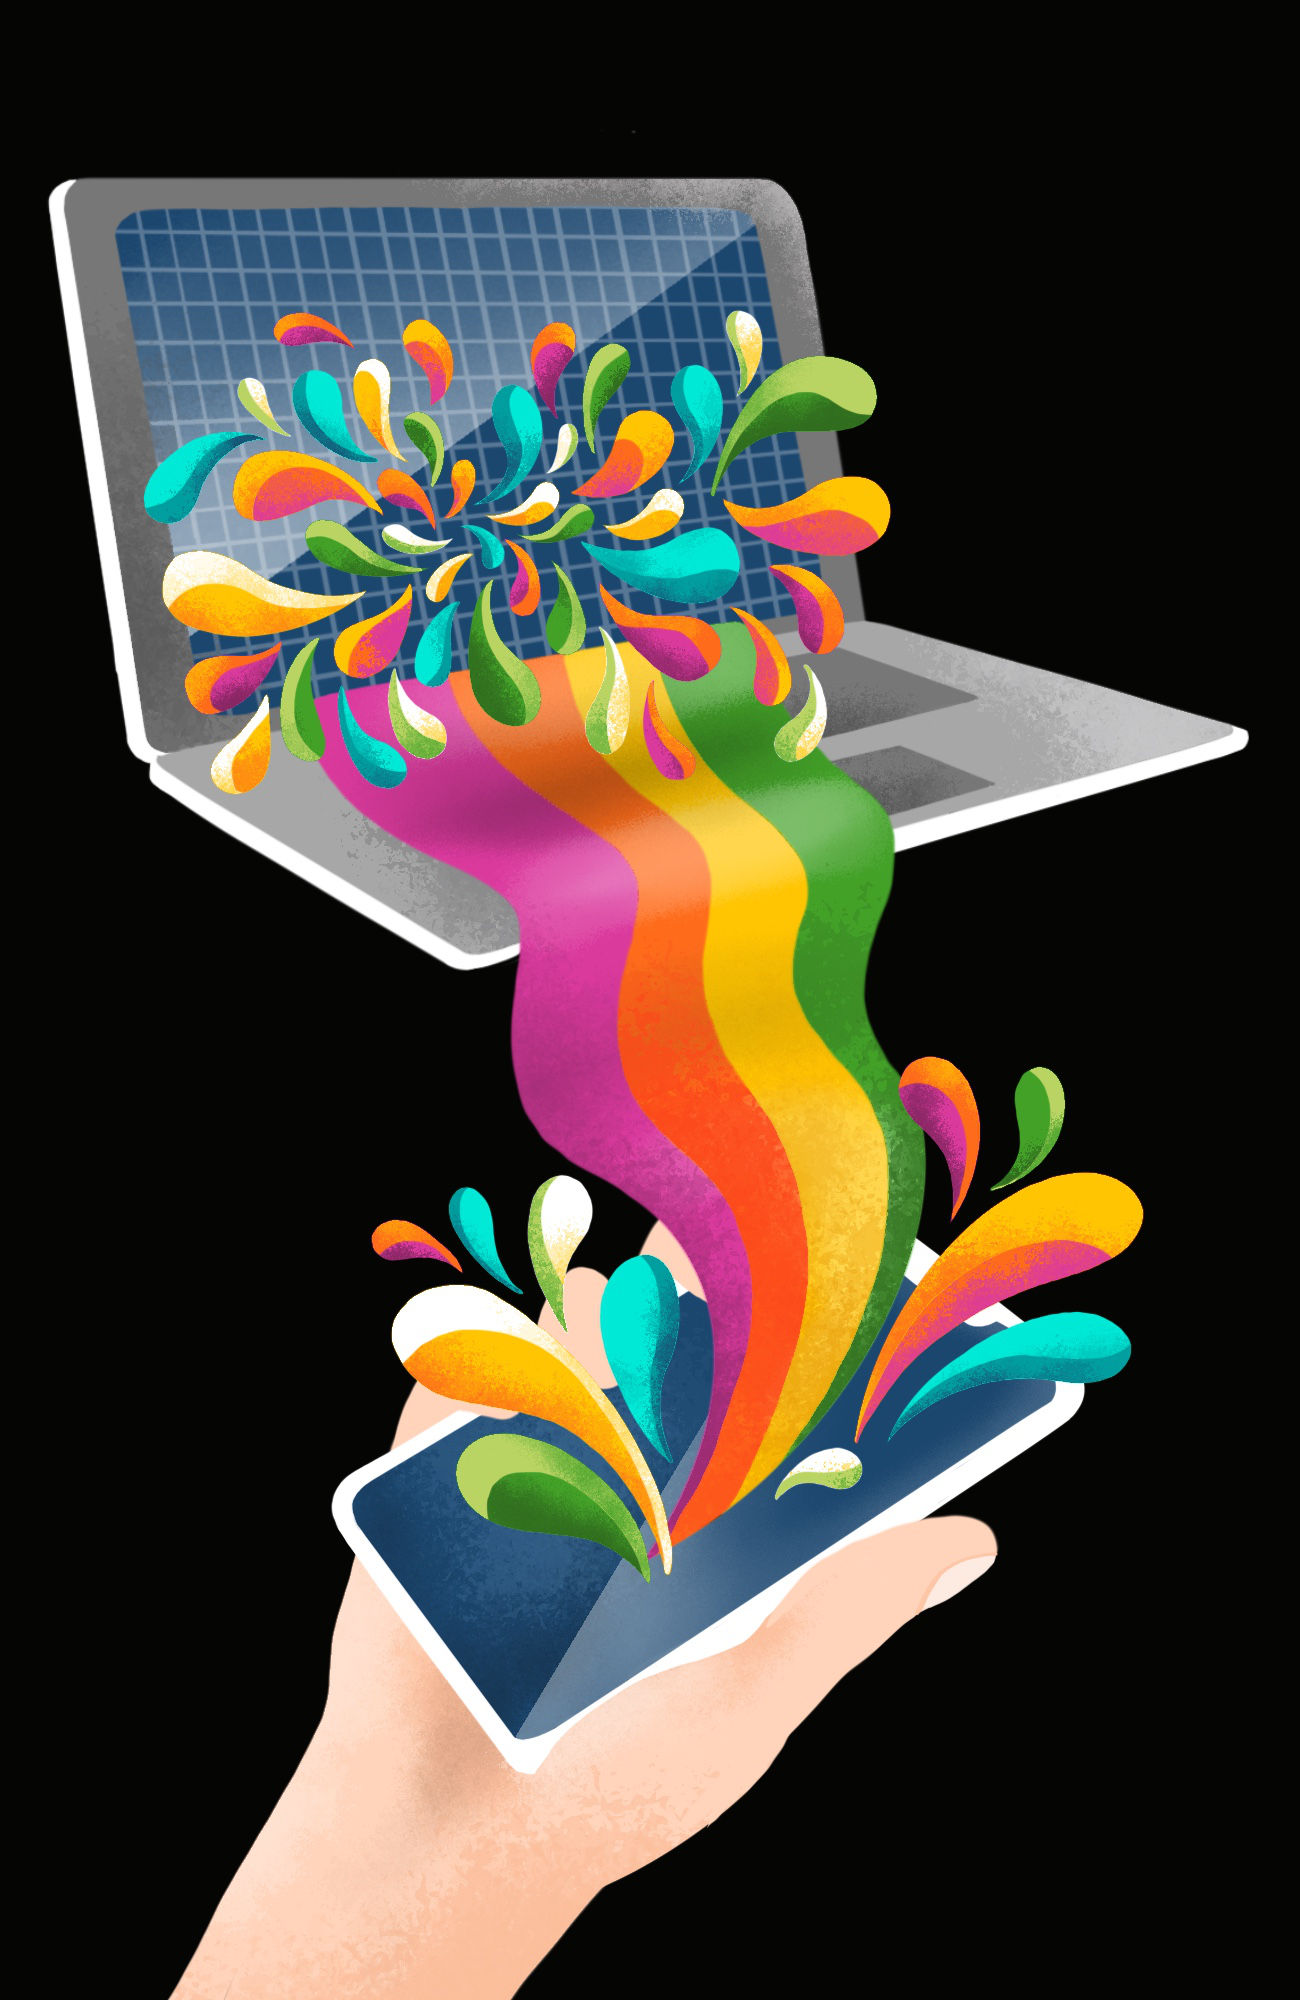 Rainbow paint pouring out of a laptop into a mobile device, representing software built to work on all screen sizes